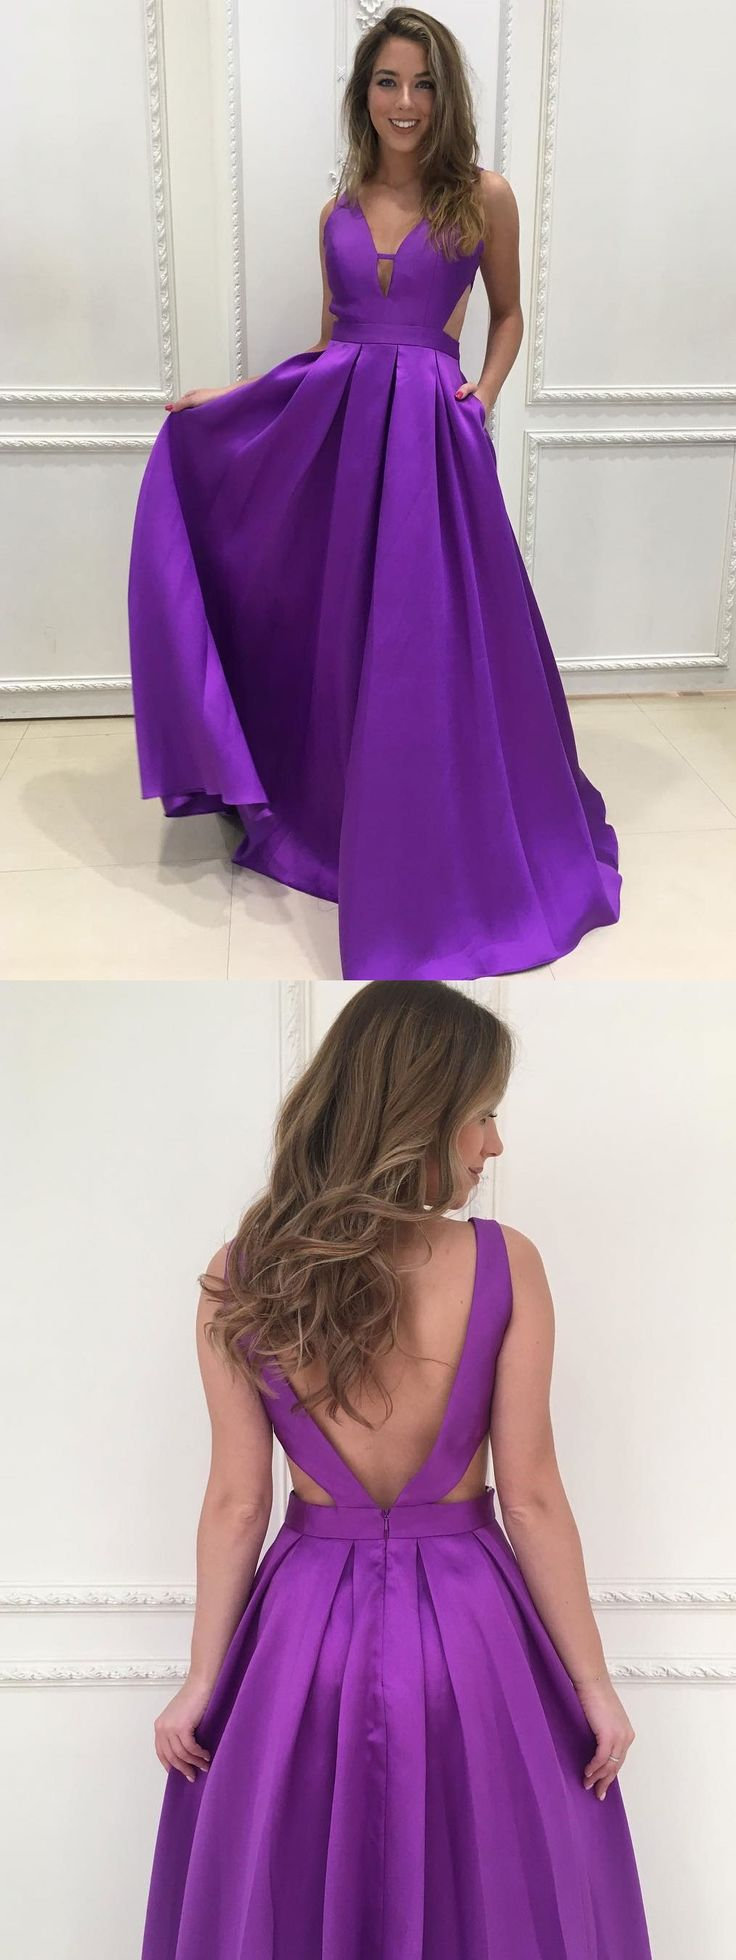 Purple satin simple prom dresses,cheap prom dresses,purple long bridesmaid dresses